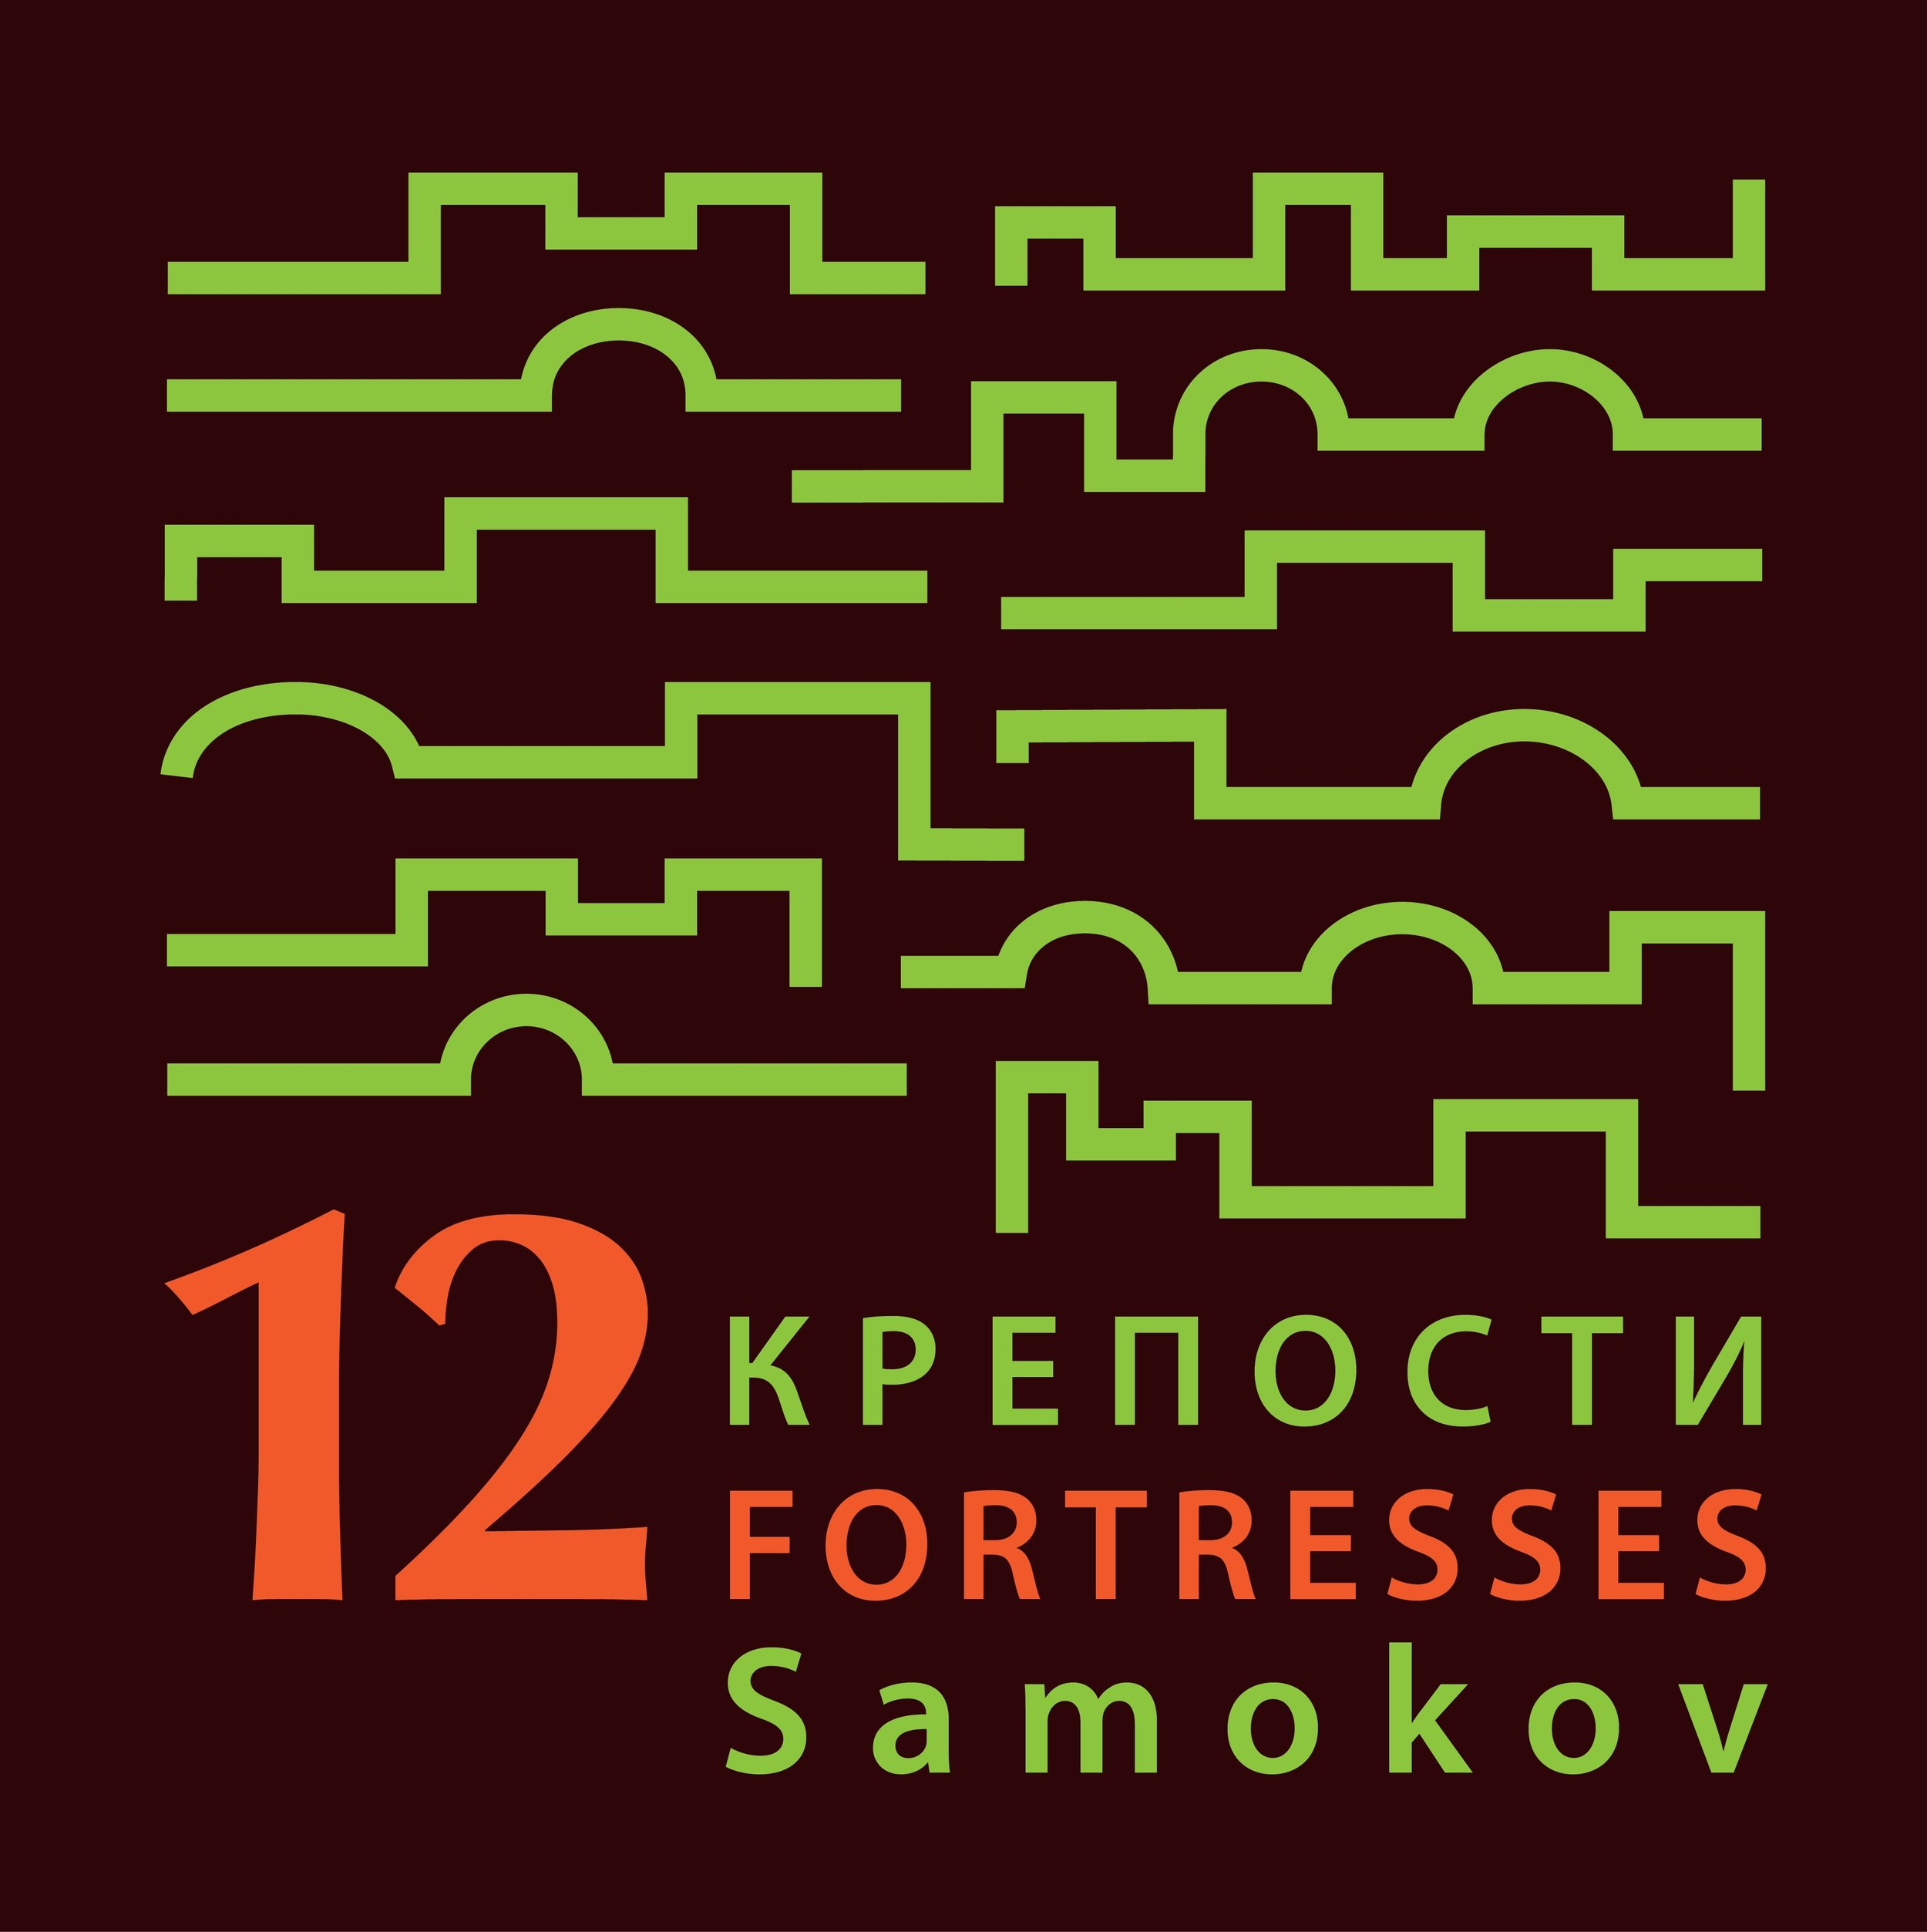 We have also kicked off our first project at the late Roman fortress Tzari Mali Grad, near the town of Samakov. A majority woman-owned cooperative called 12 Fortresses (the number of fortresses near the town) has been formed and the members are completing the SPI mini business school. They have just begun selling their first products...magnets and tote bags incorporating the late Roman and Byzantine sites and objects of the region. Congratulations to the members of 12 Fortresses! Our Bulgaria team lead by Rossitza Ohridska-Olson is exploring several new projects in Bulgaria, so stay tuned!